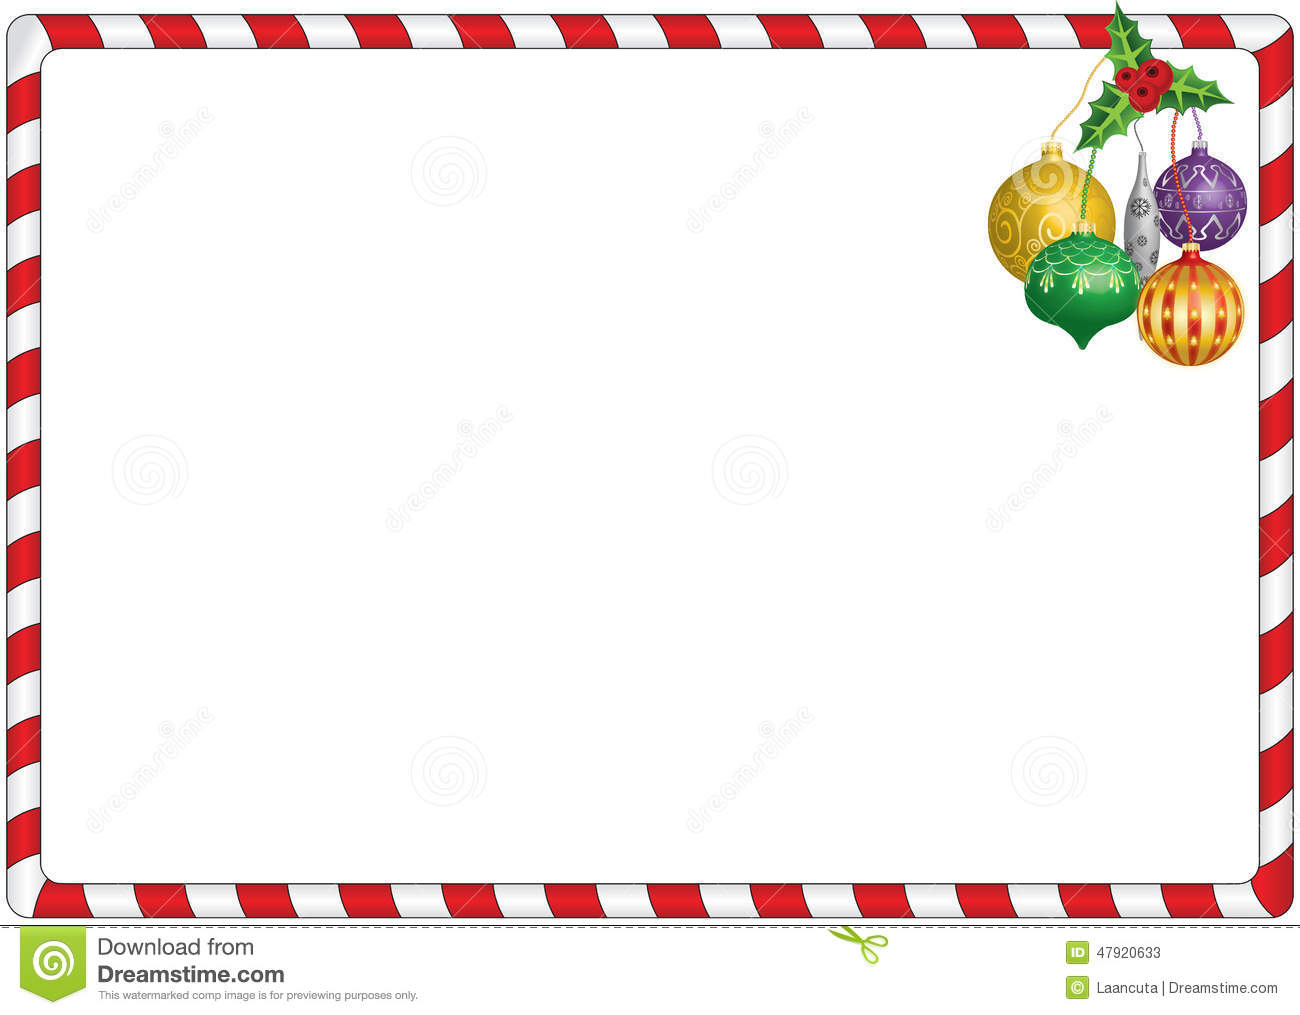 Red And White Candy Cane Christmas Decorations